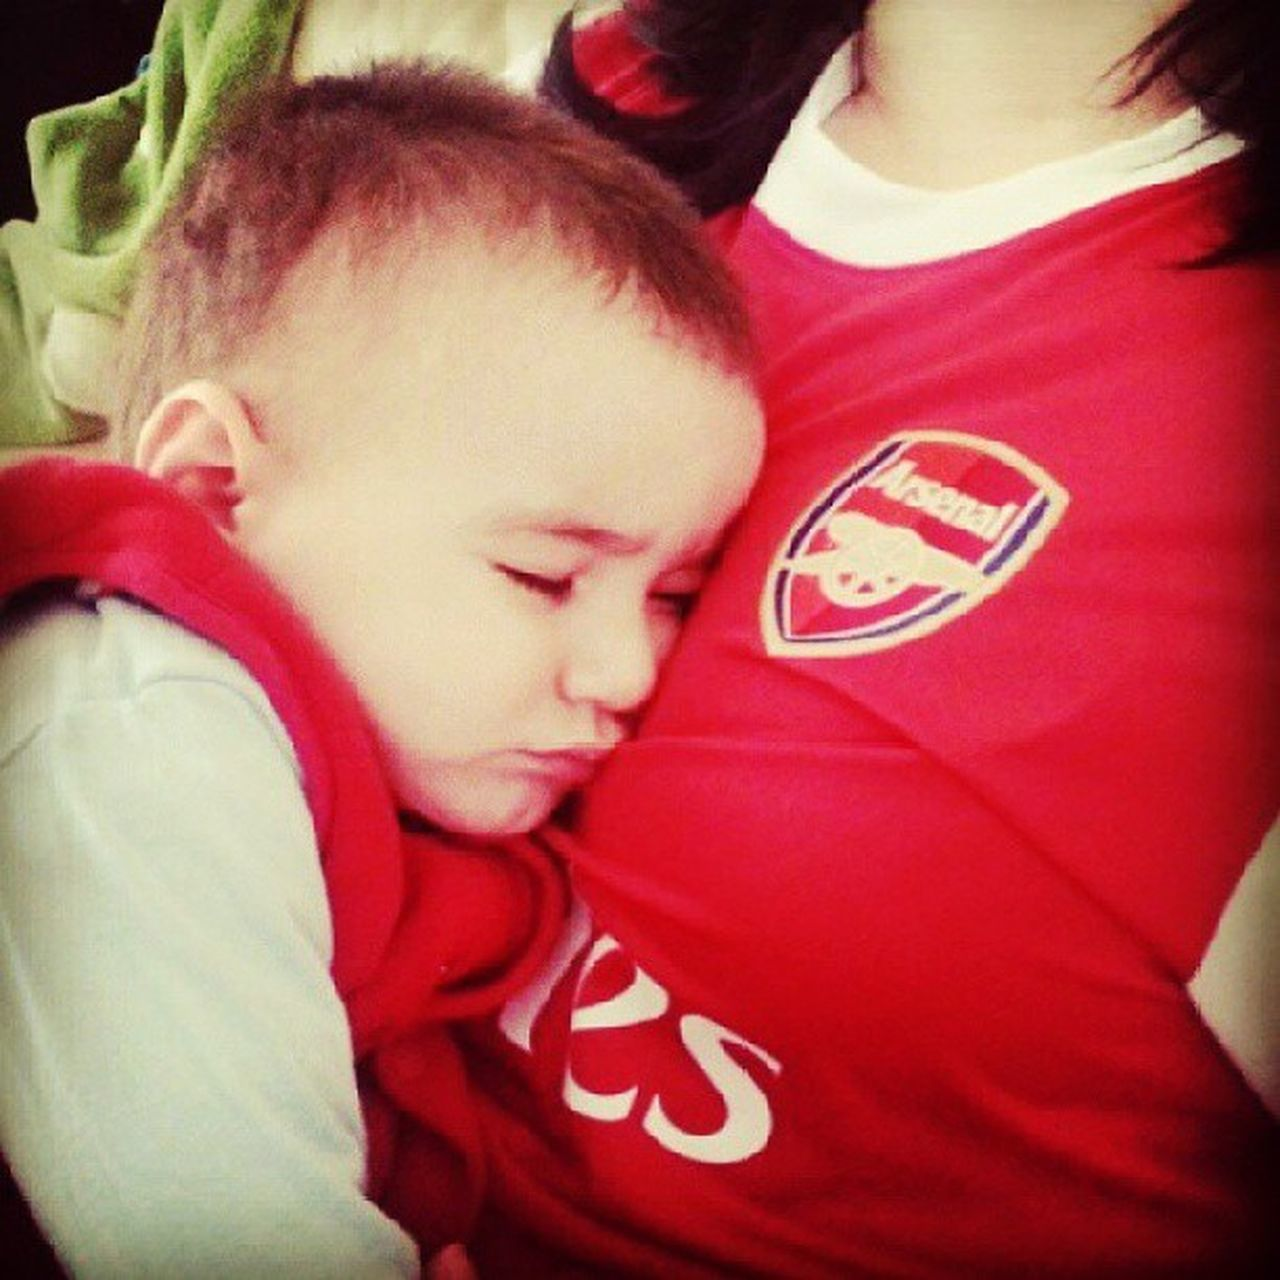 Gooner dreams :)